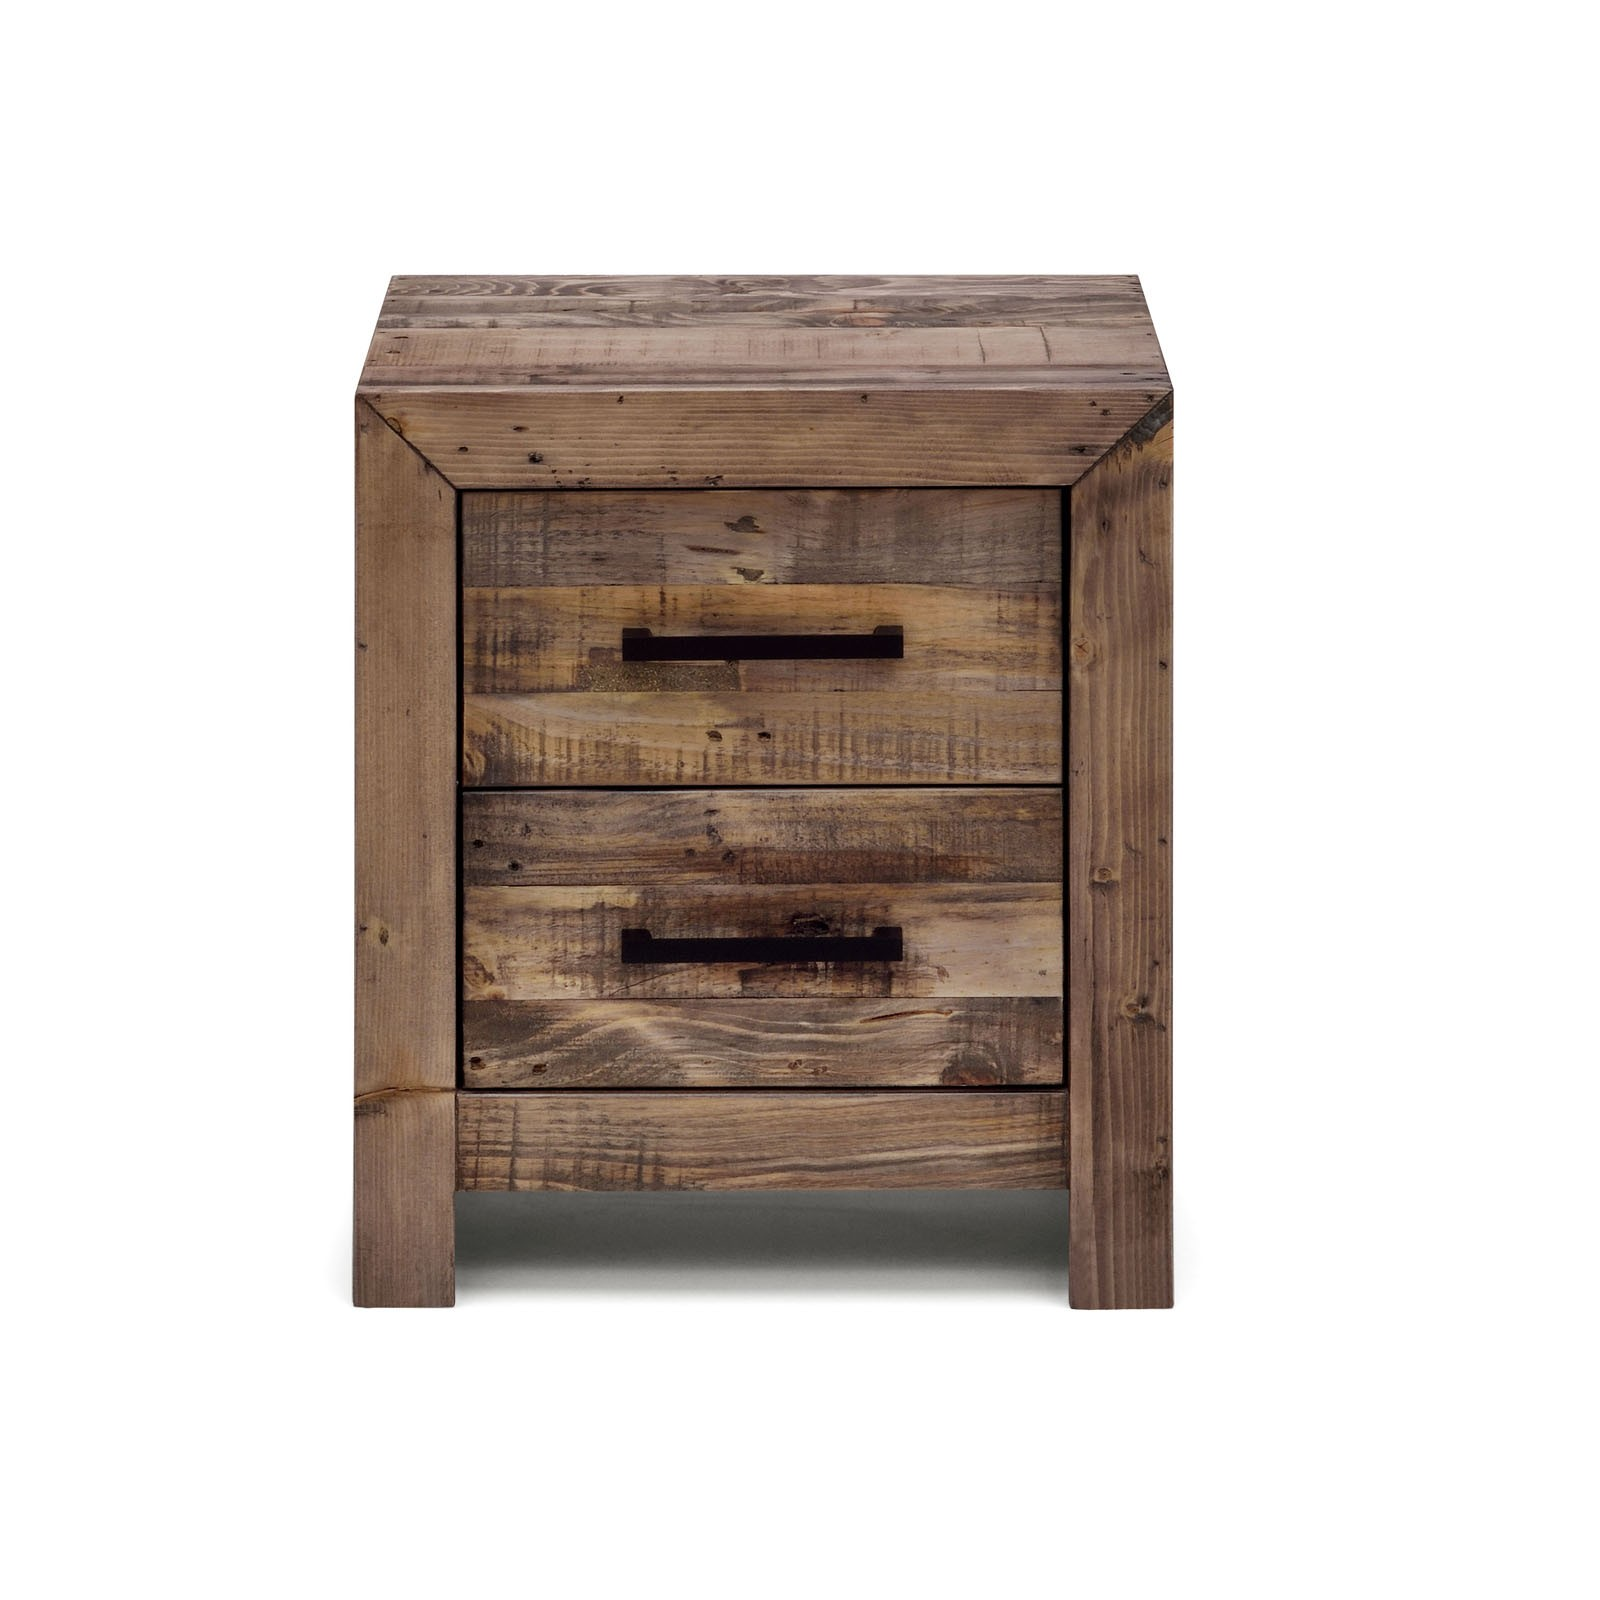 boston recycled solid pine timber bedside table storage night stand. Black Bedroom Furniture Sets. Home Design Ideas